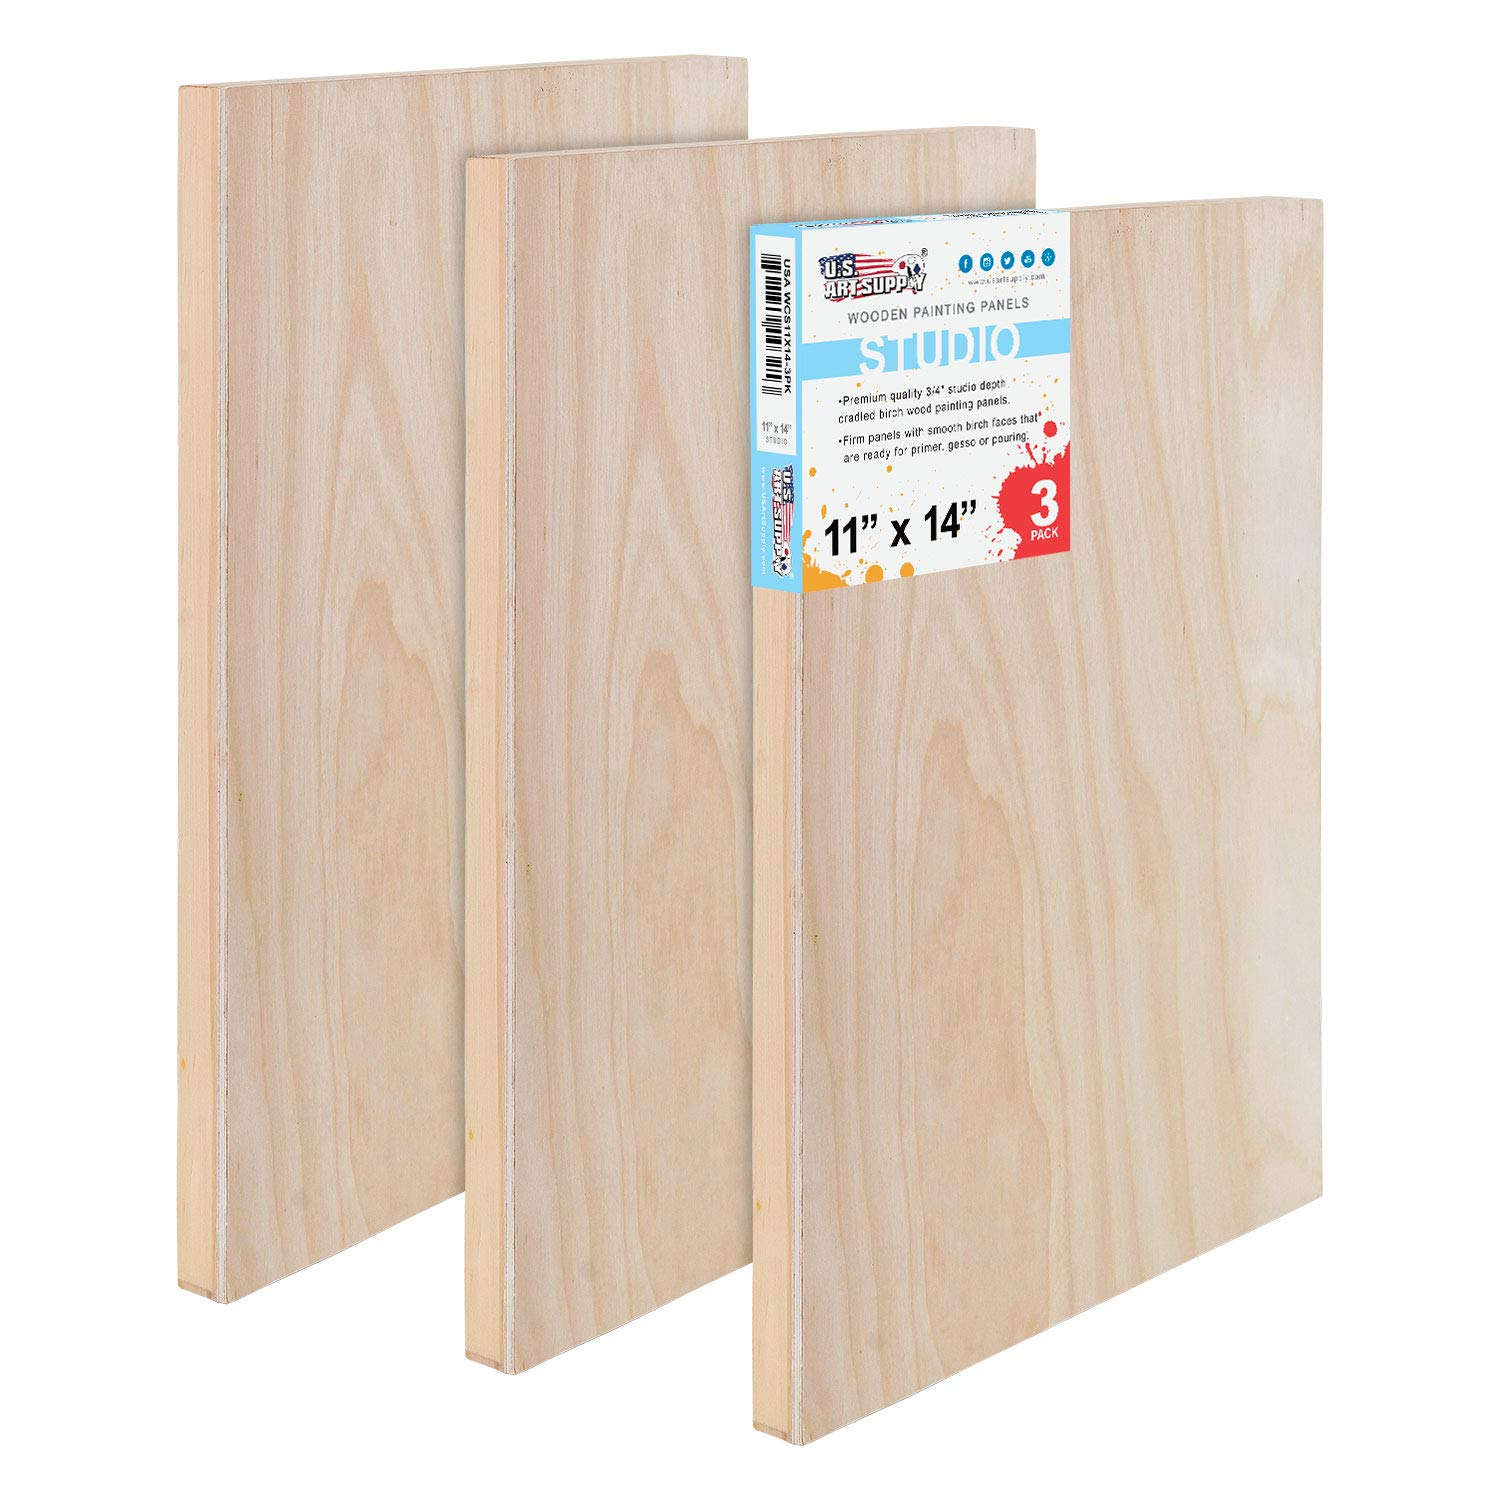 U.S. Art Supply 11'' x 14'' Birch Wood Paint Pouring Panel Boards, Studio 3/4'' Deep Cradle (Pack of 3) - Artist Wooden Wall Canvases - Painting Mixed-Media Craft, Acrylic, Oil, Watercolor, Encaustic by US Art Supply